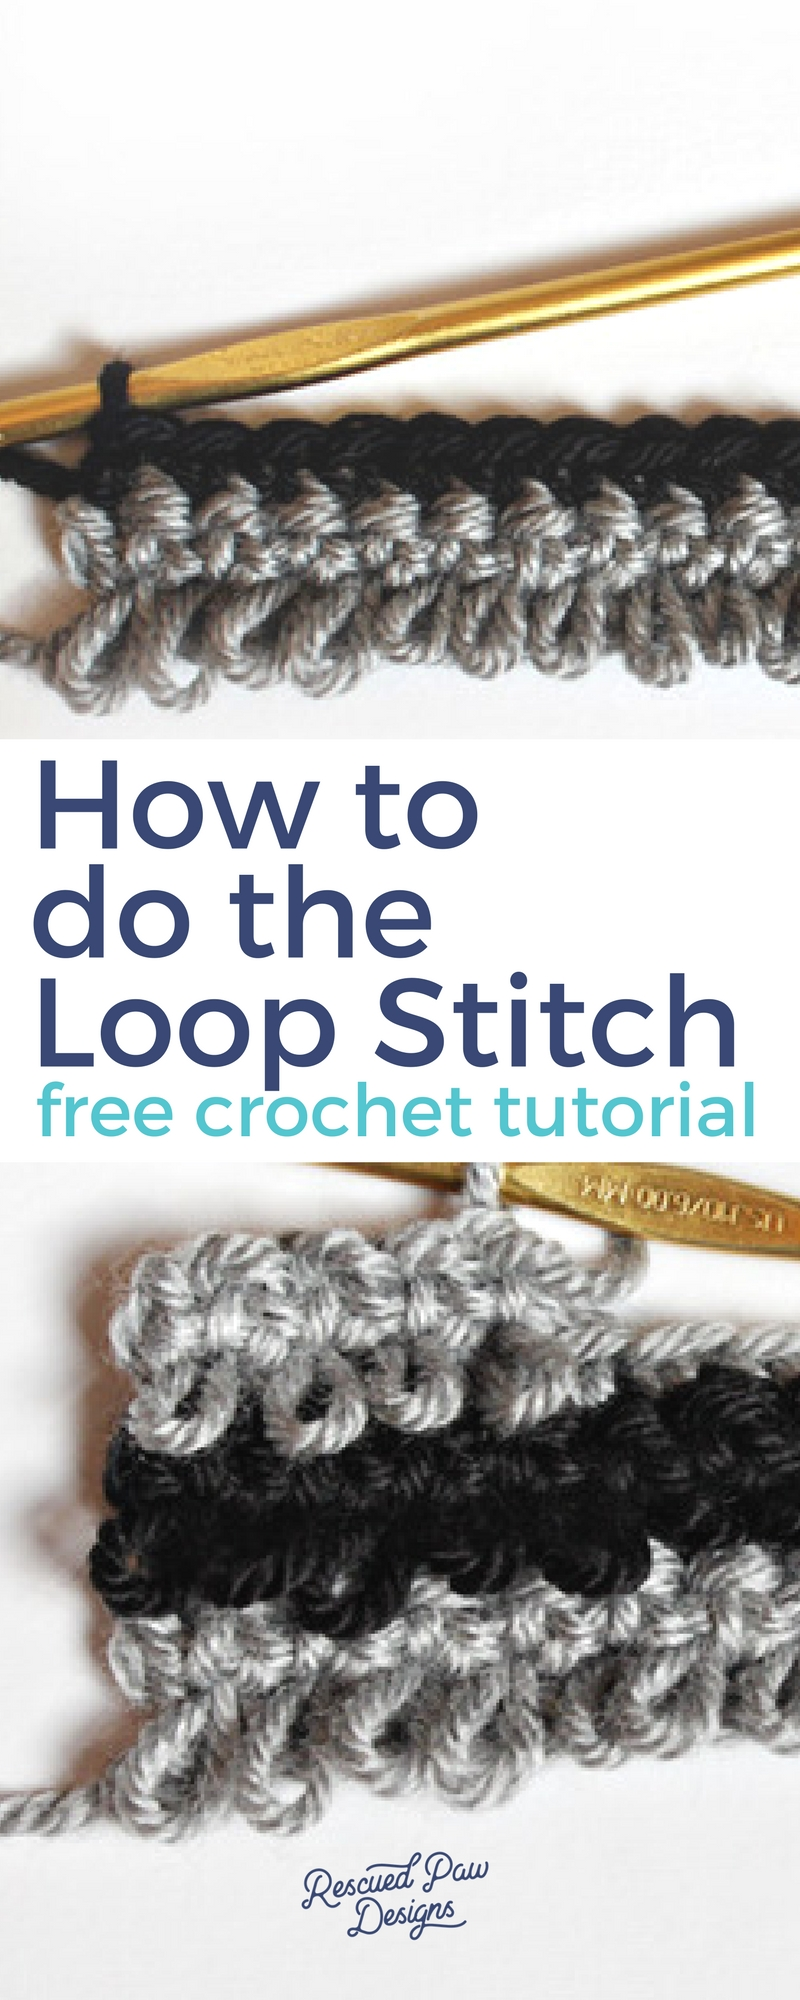 Learn How to do the Loop Stitch in Crochet! Crochet Loop Stitch!